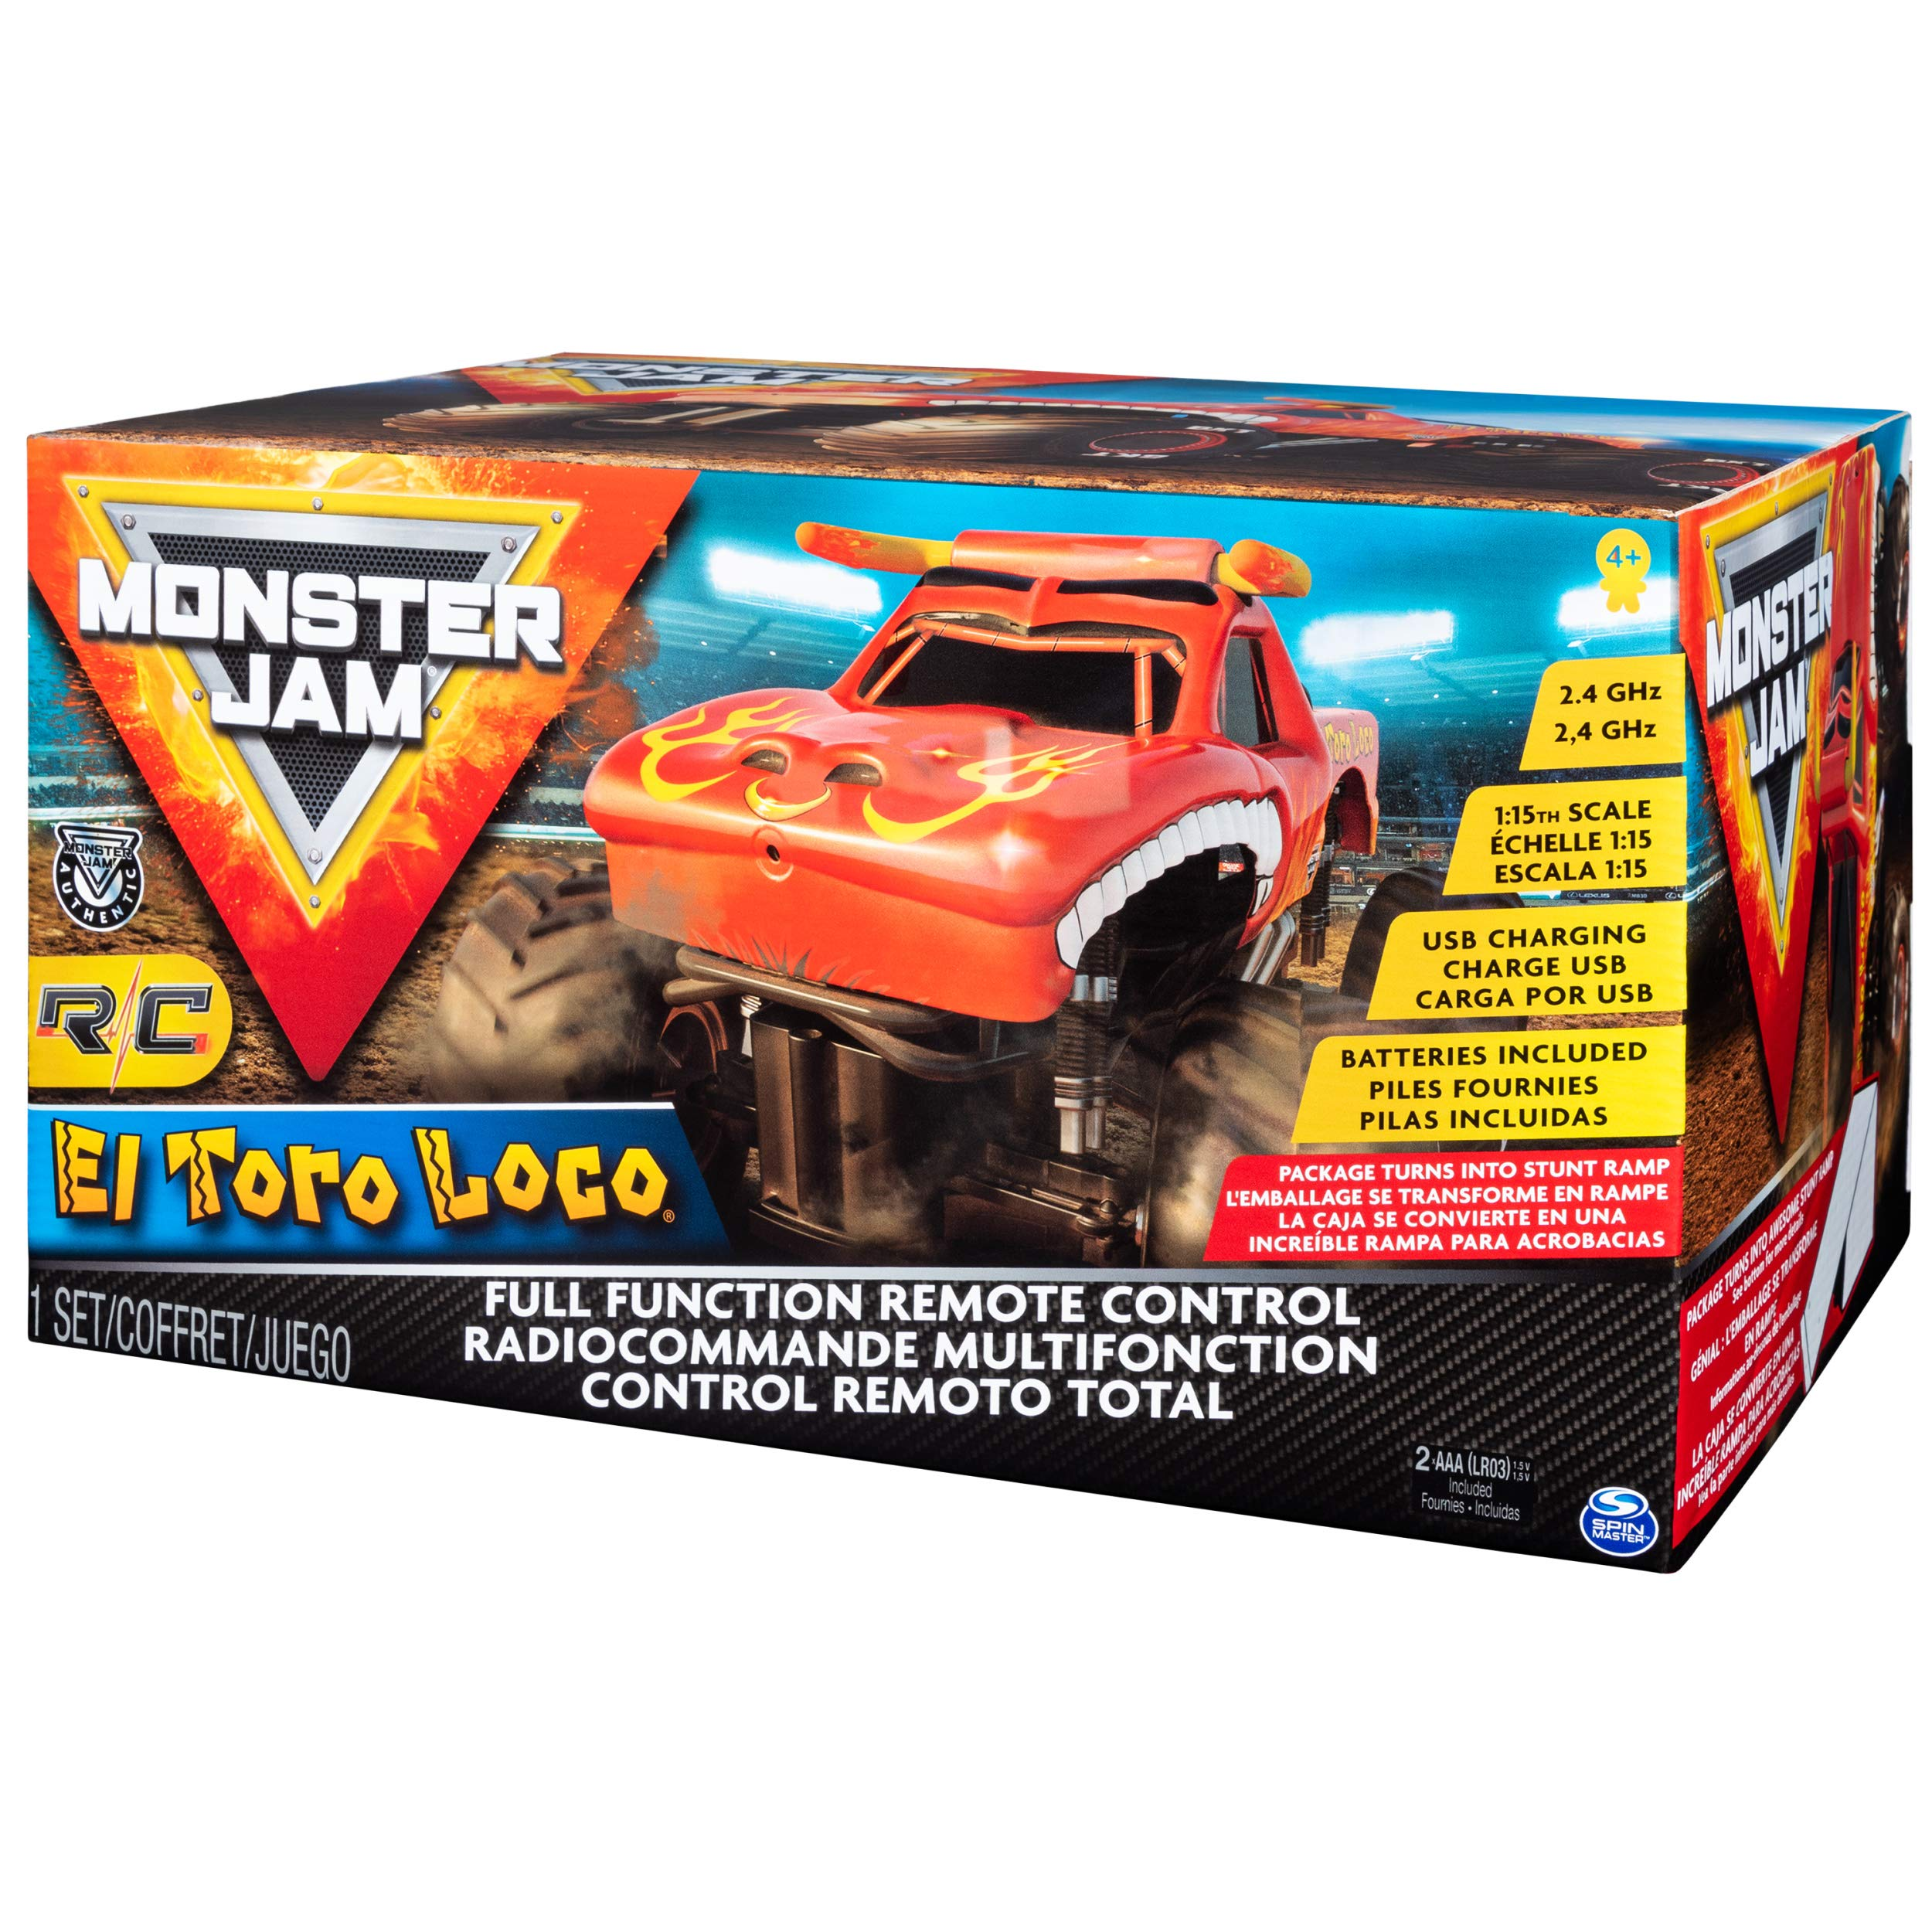 Monster Jam Official El Toro Loco Remote Control Monster Truck, 1:15 Scale, 2.4 GHz by Monster Jam (Image #8)